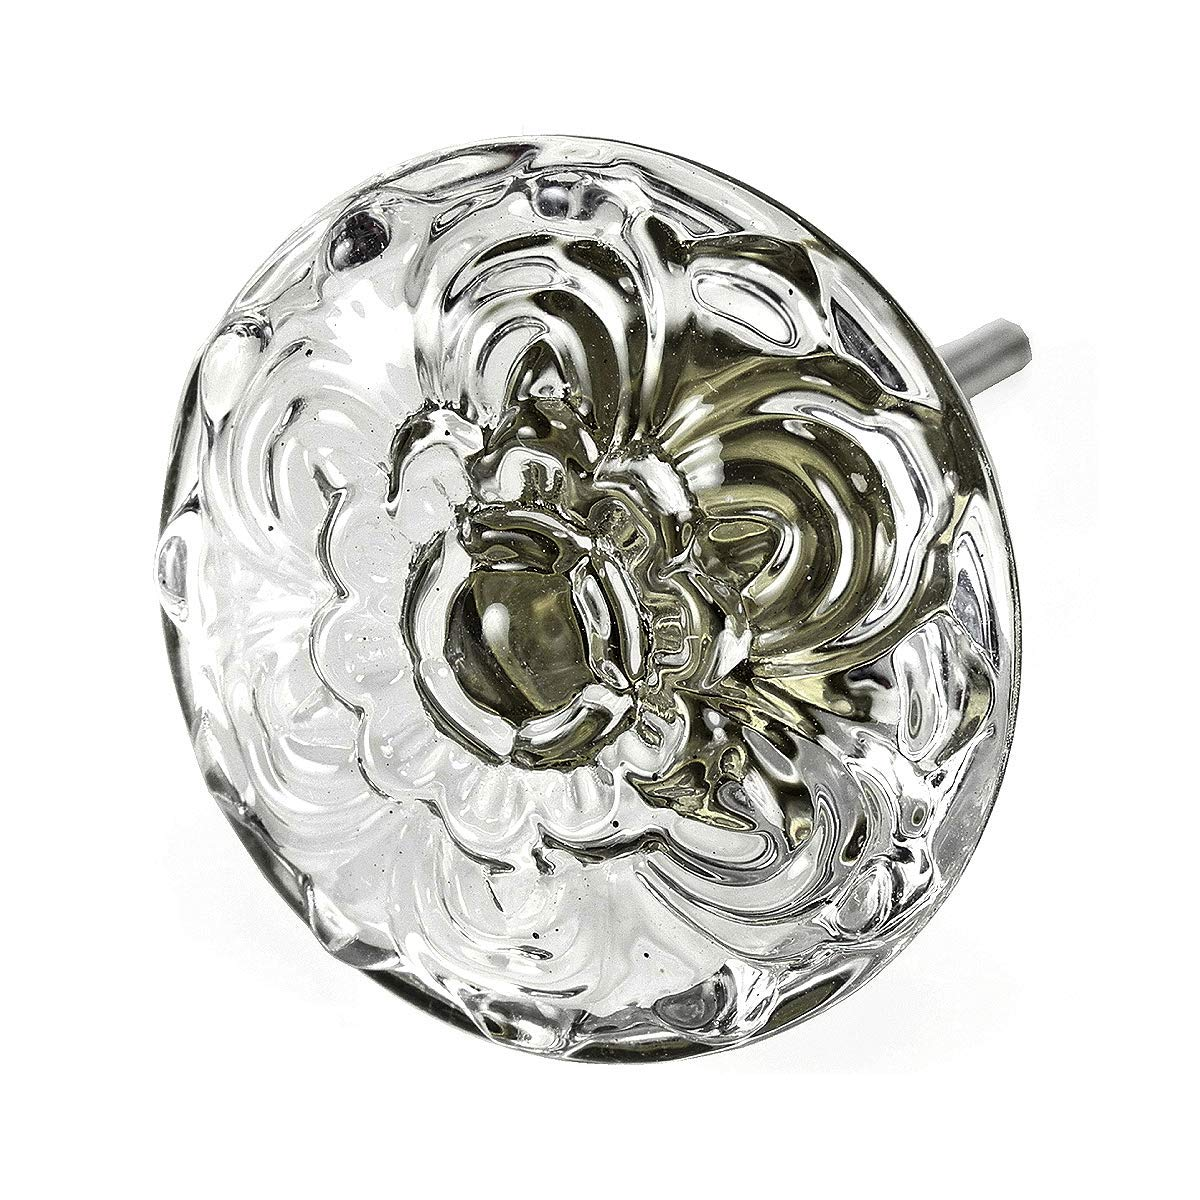 Cheap Antique Kitchen Knobs And Pulls Find Antique Kitchen Knobs And Pulls Deals On Line At Alibaba Com